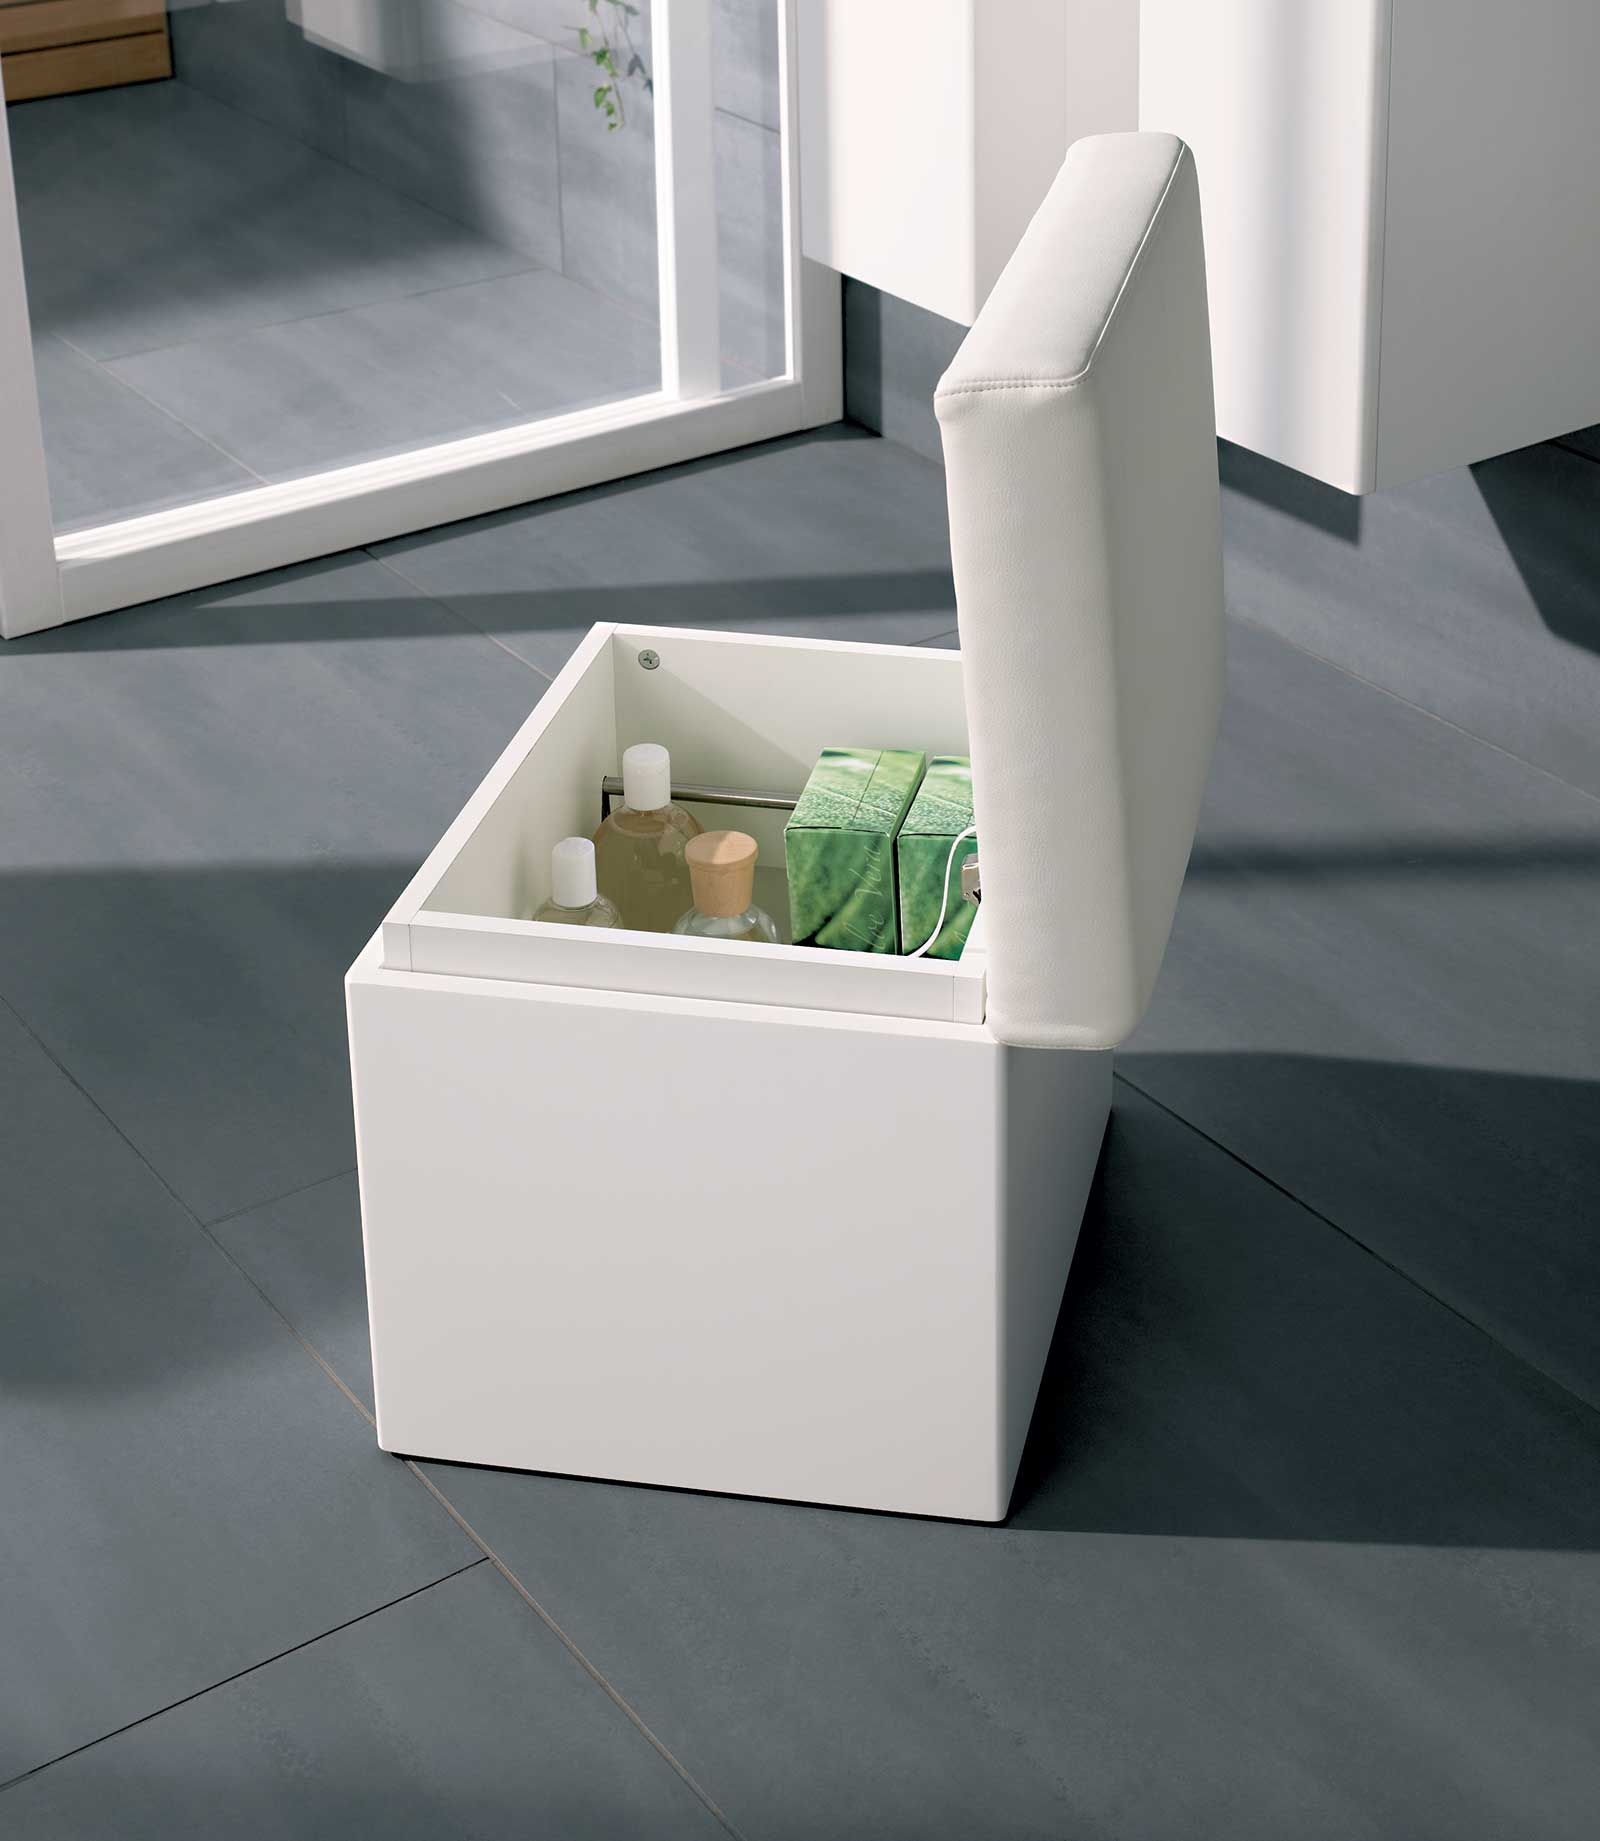 Twyford All White Finish Bathroom Seat With Storage Ta0901wh